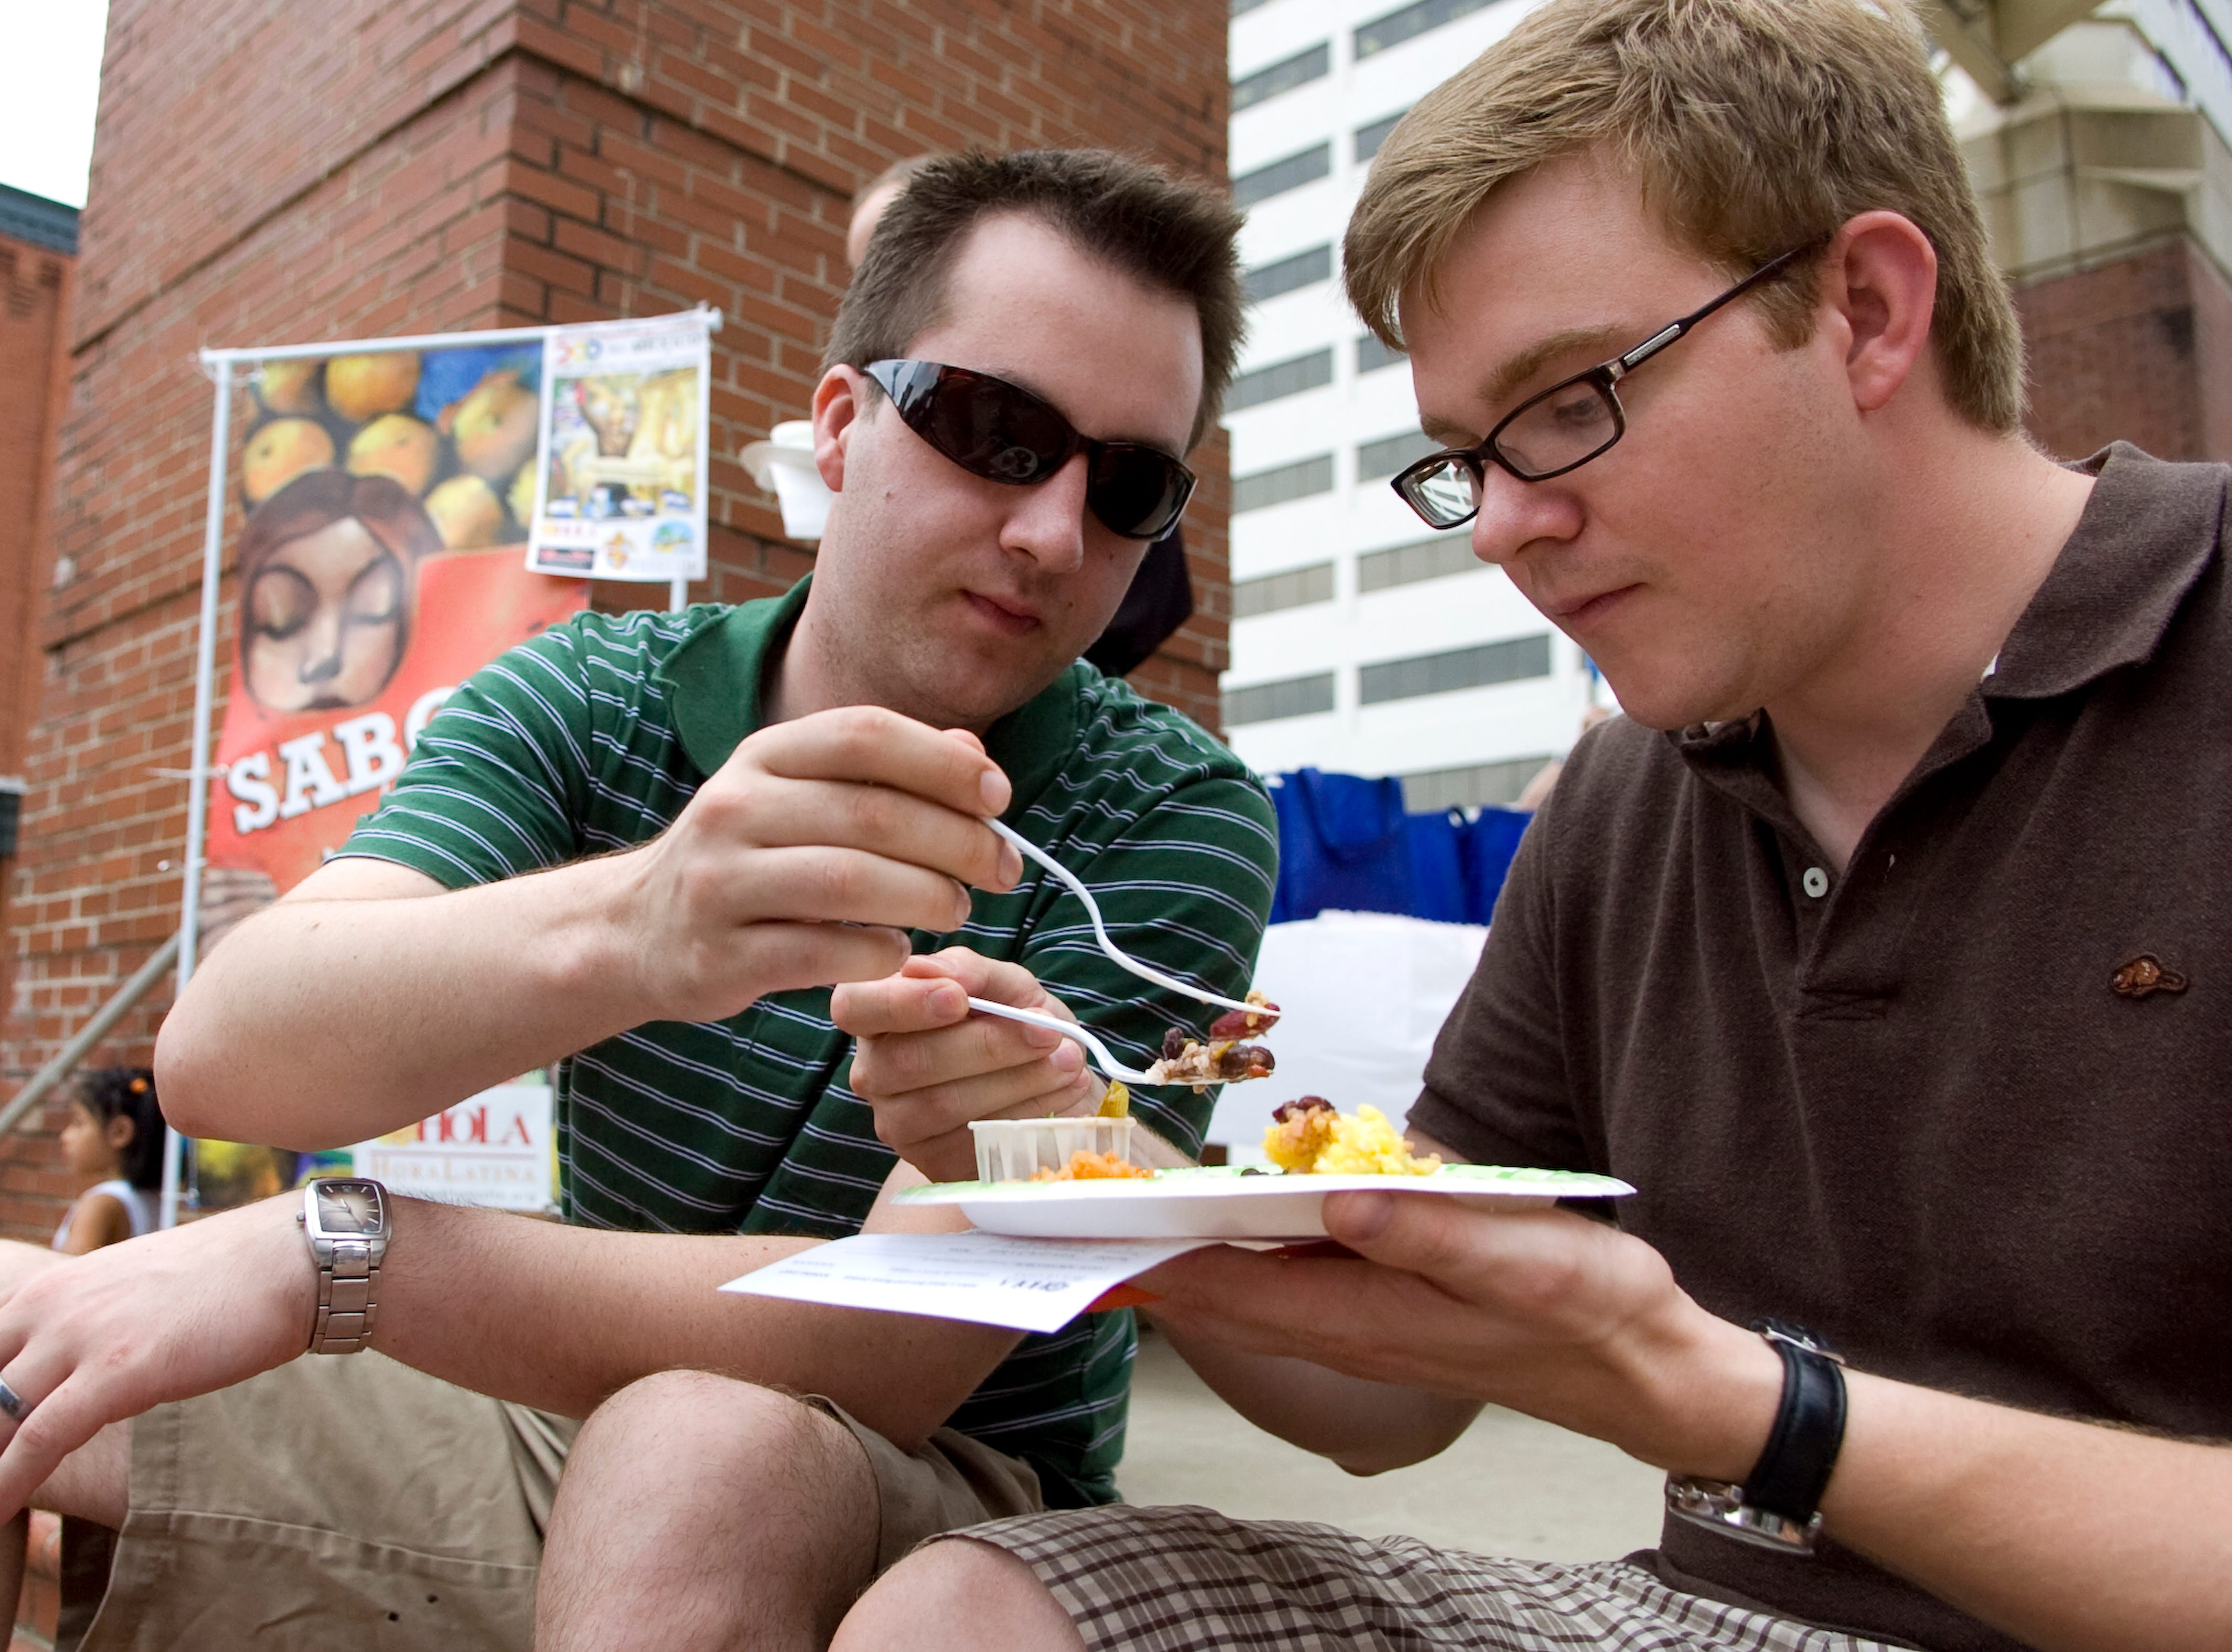 Evan Dunn, left, and Grant Cothran sample a variety plate of beans and rice during the Hola Festival's healthy beans and rice cook off at Market Square on Thursday, September 16, 2010.